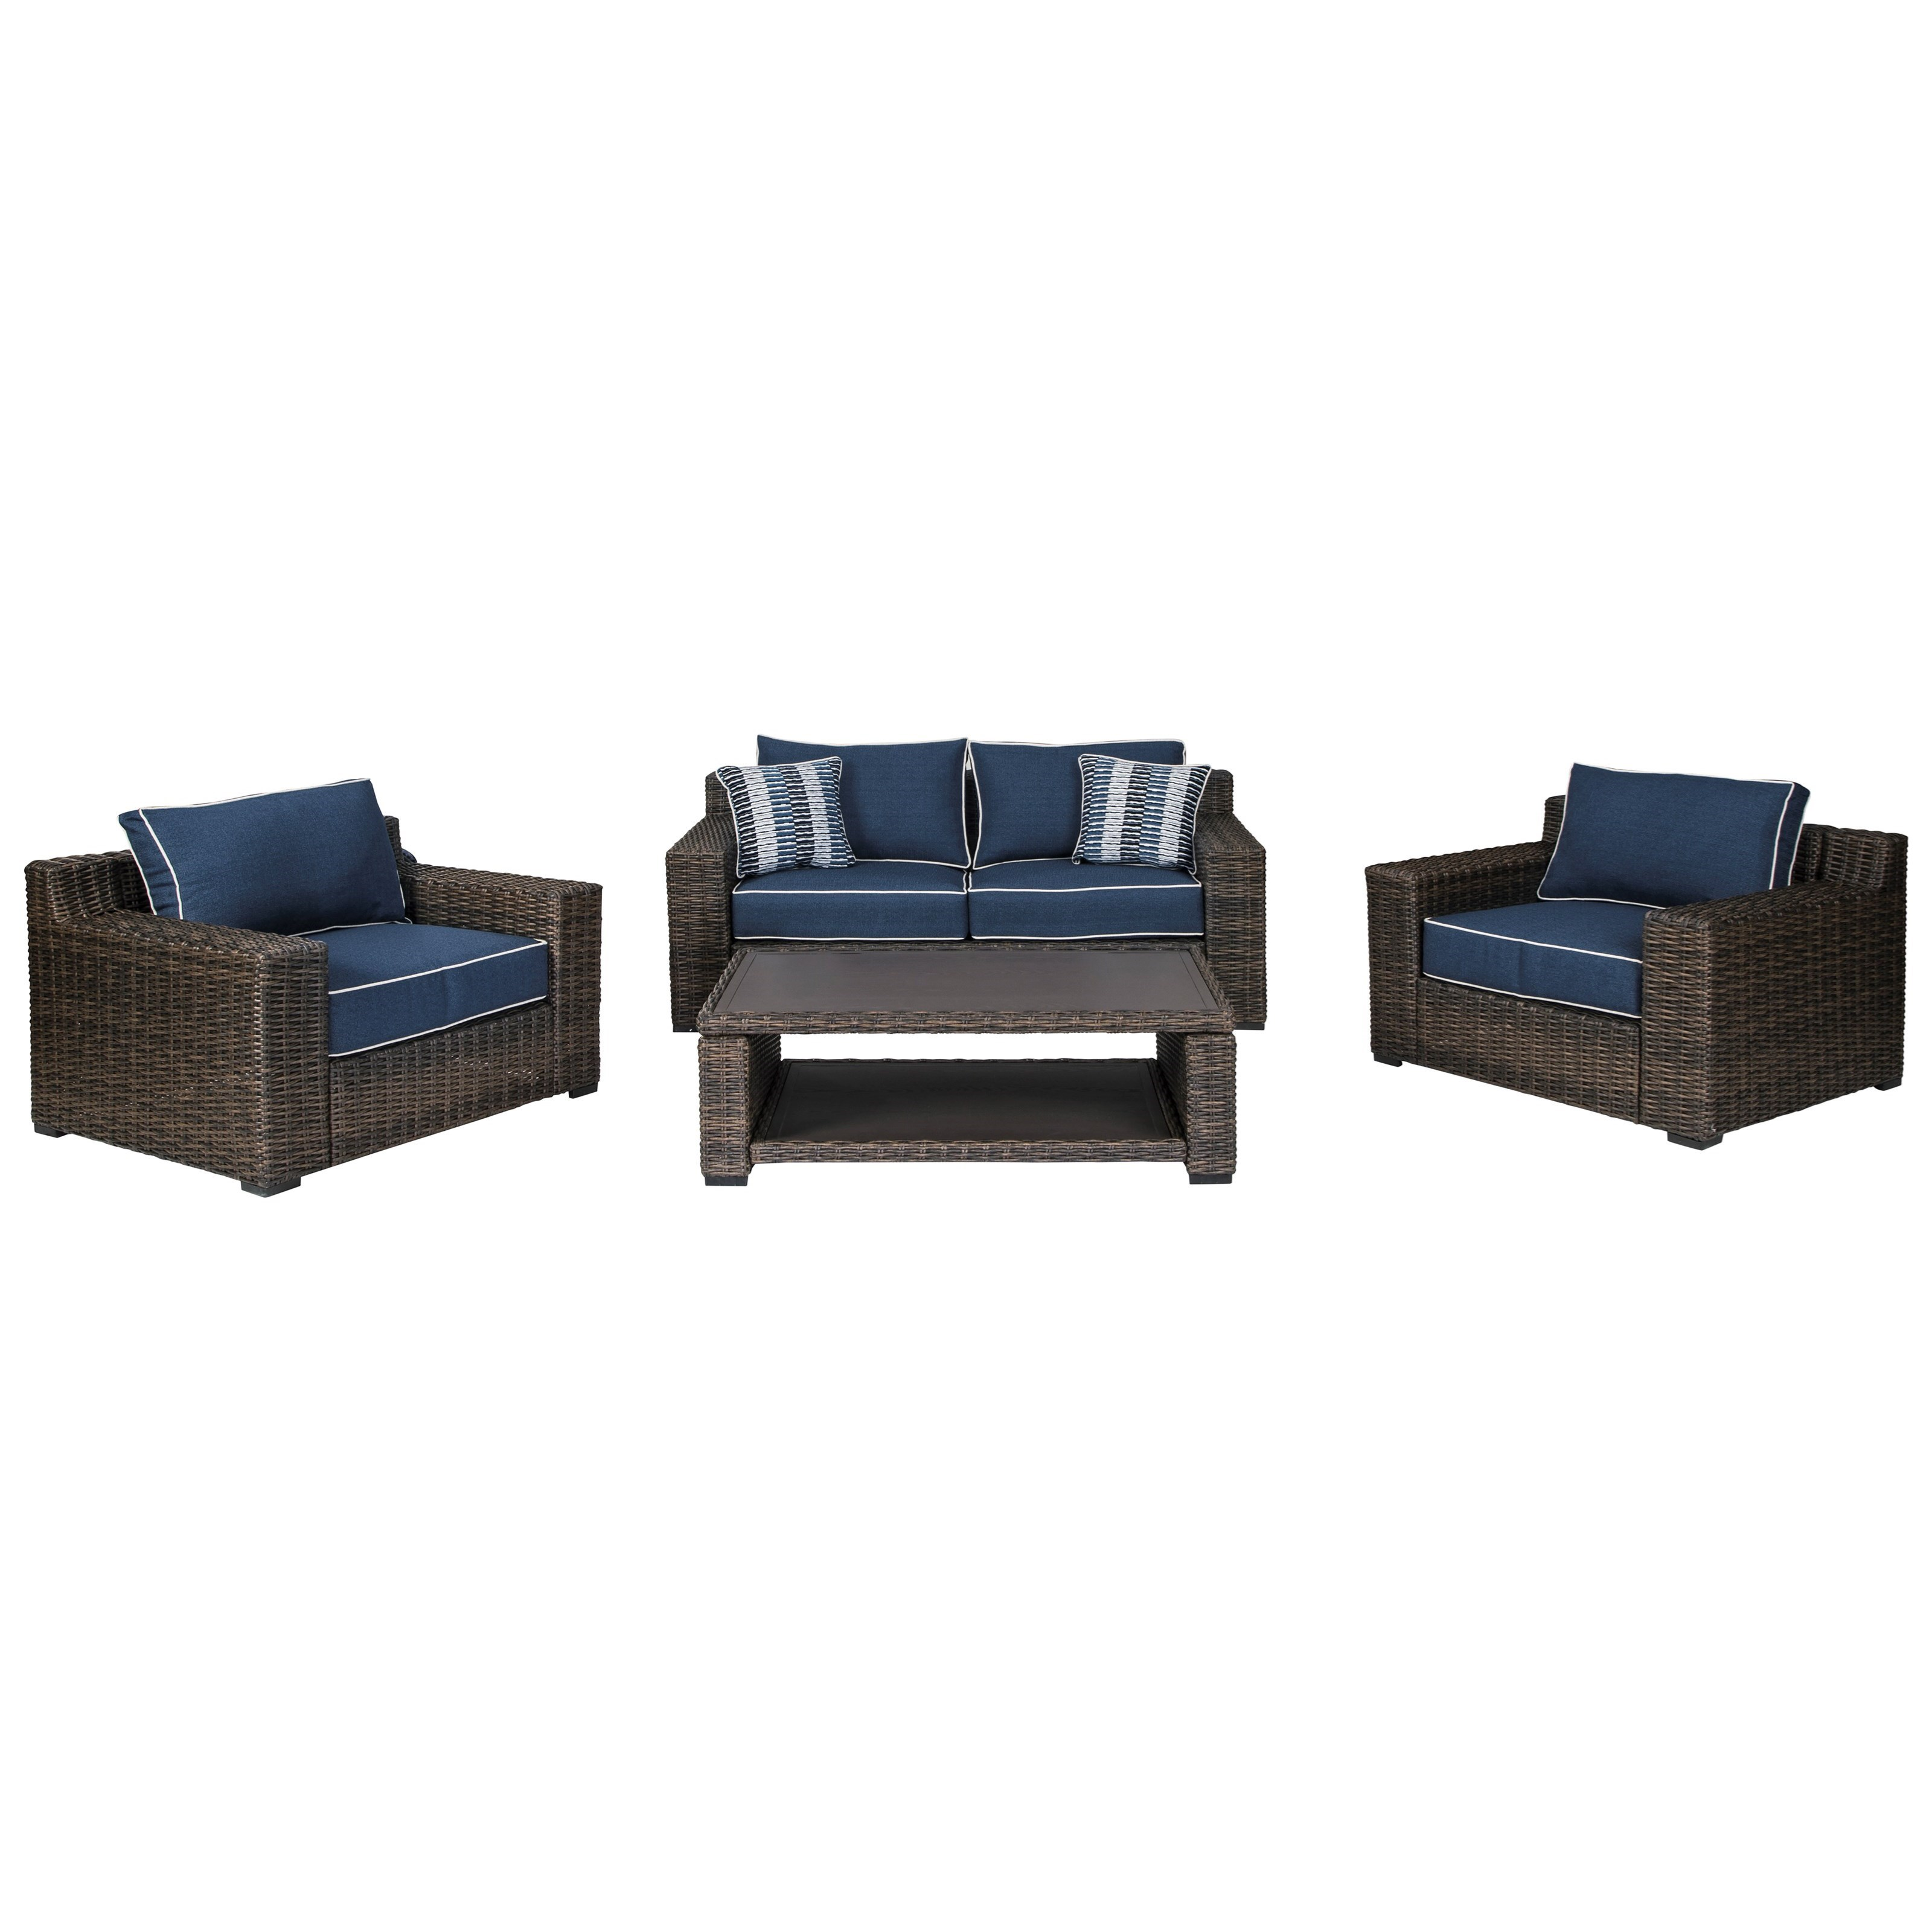 Grasson Lane Outdoor Conversation Set by Signature Design by Ashley at Furniture Barn